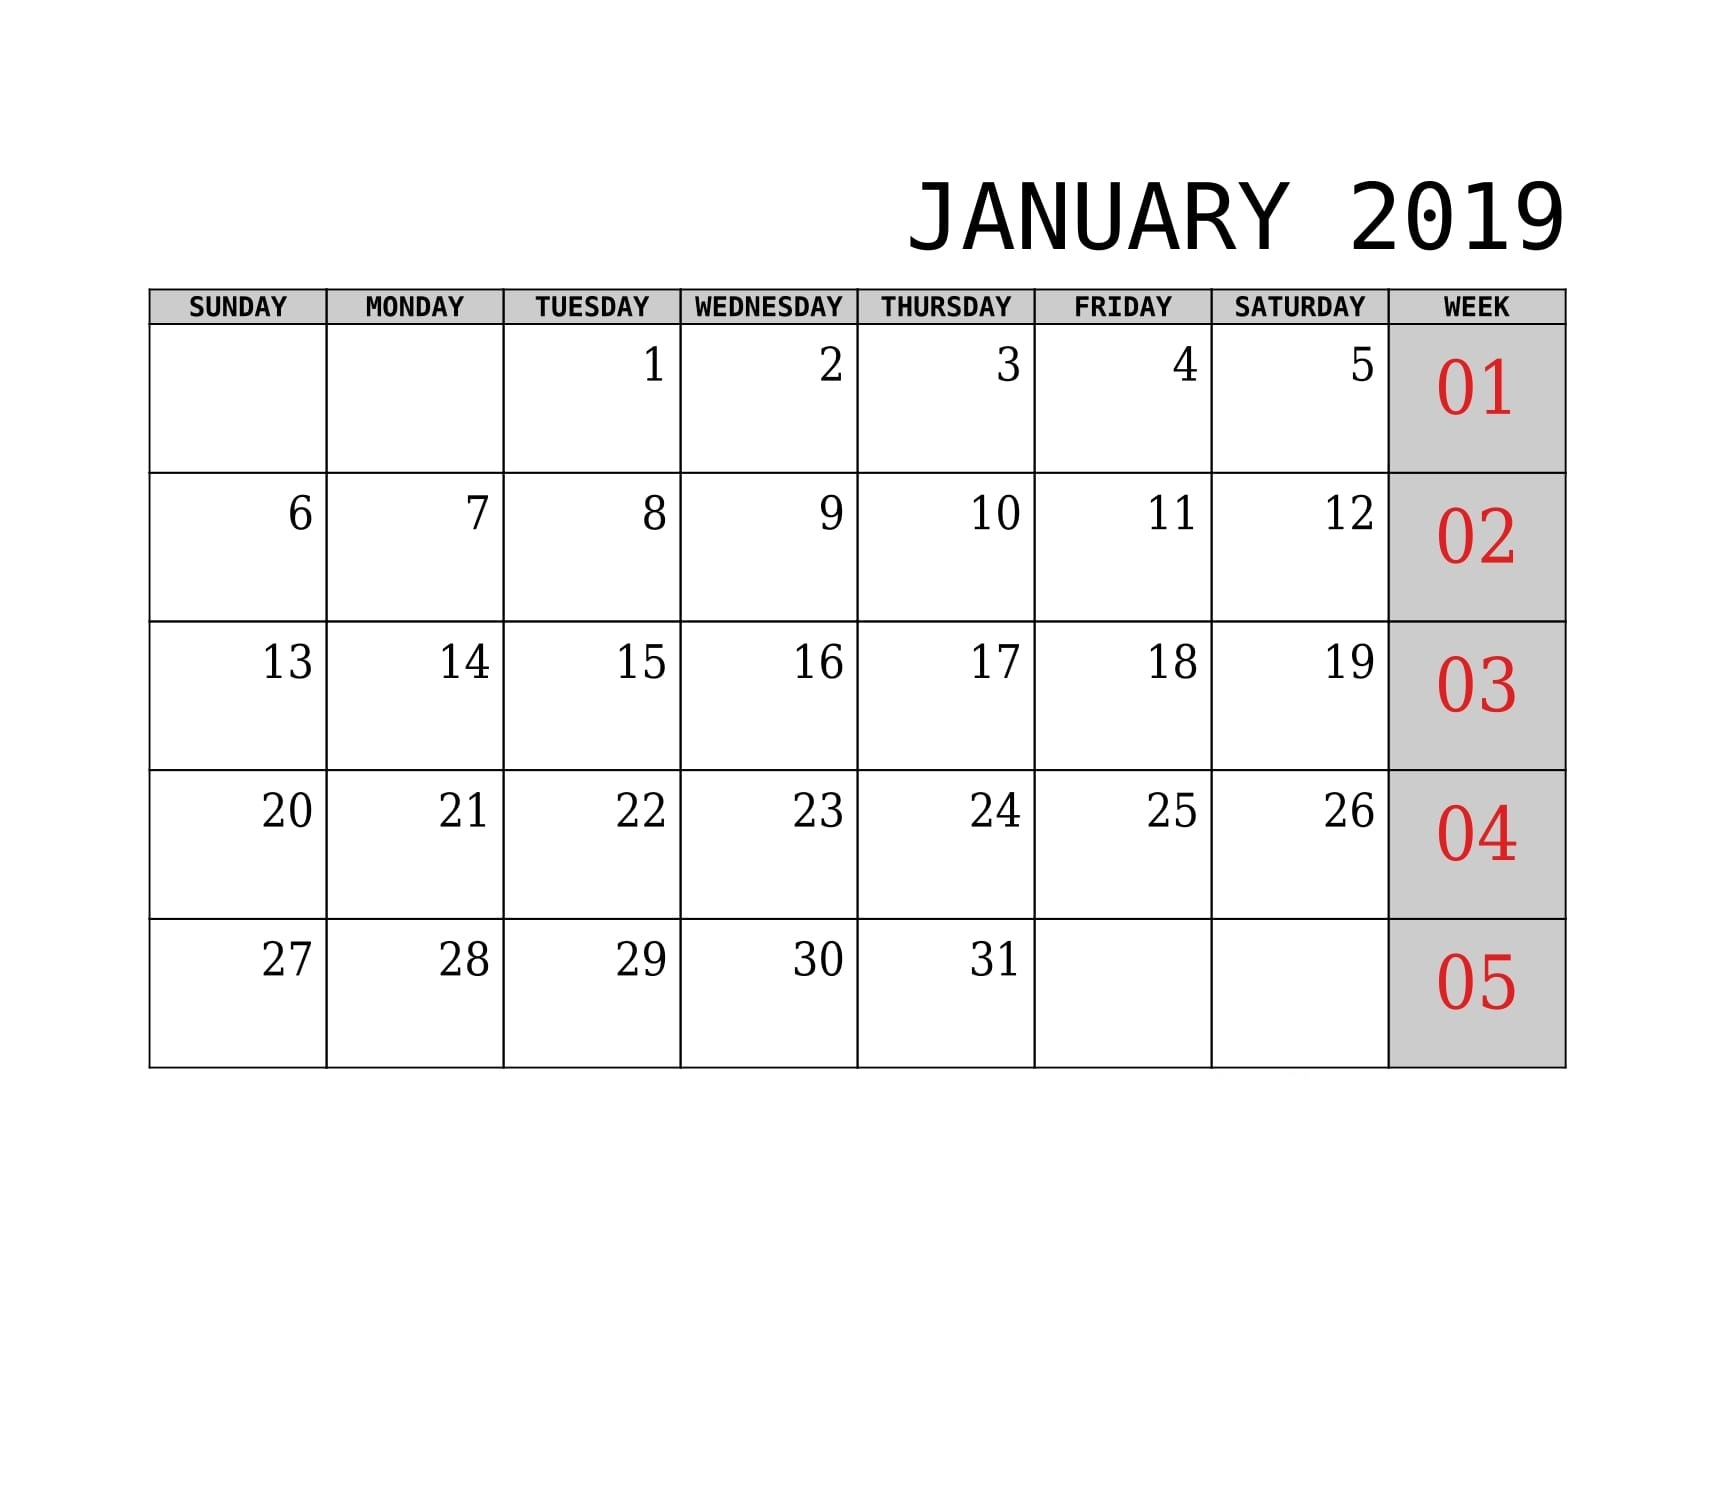 excel pdf word 2019 january printable calendar april 2019::January 2019 Calendar Printable Template